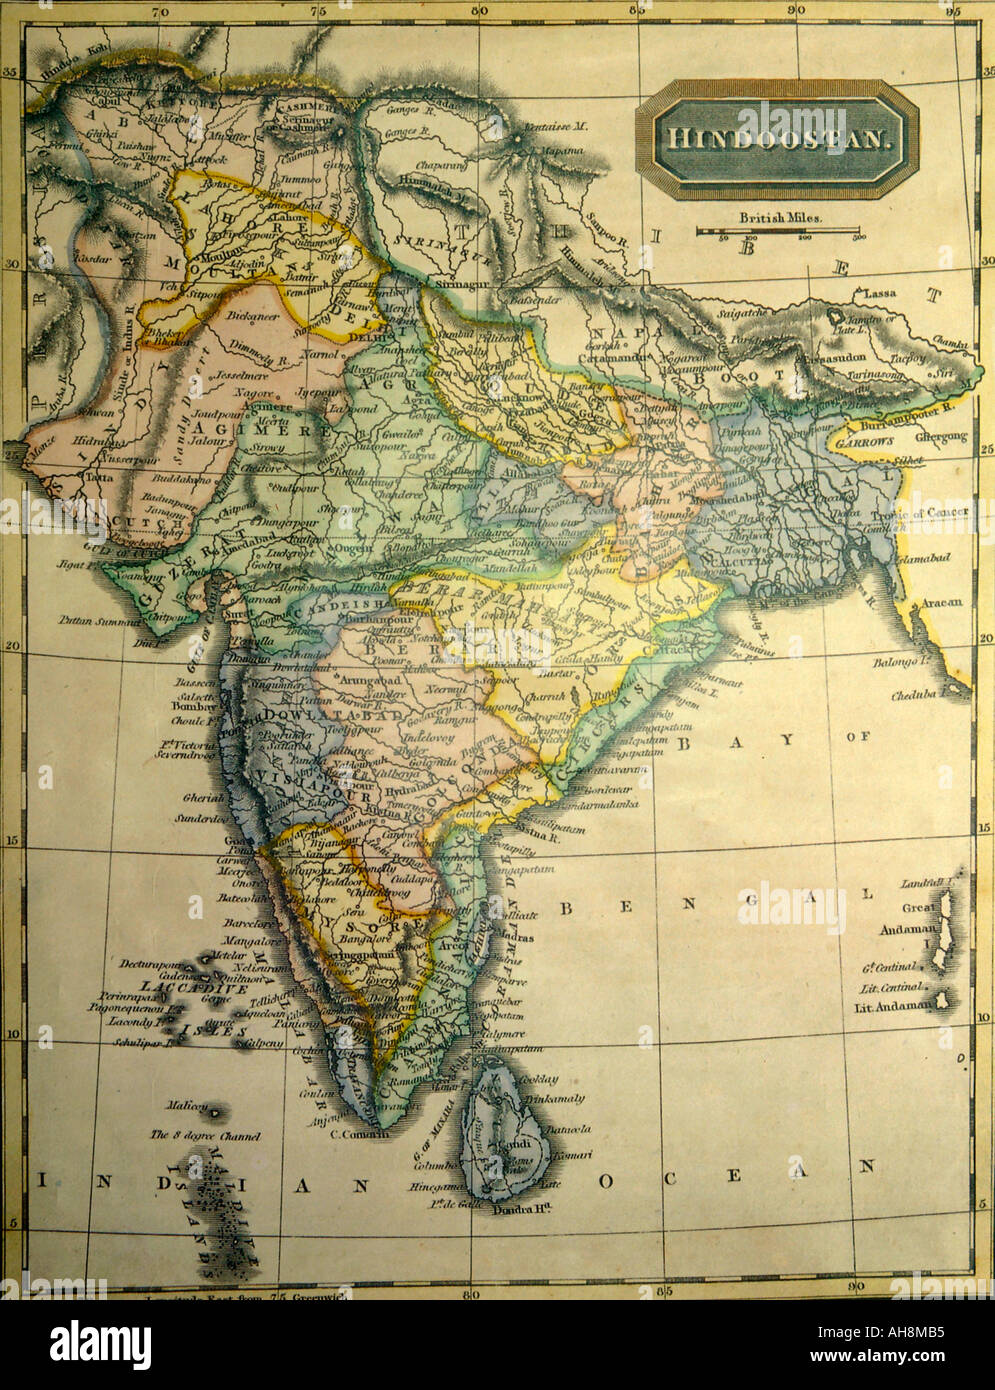 Old Map Of India AAD71499 Old Indian map showing India Indian Ocean Stock Photo